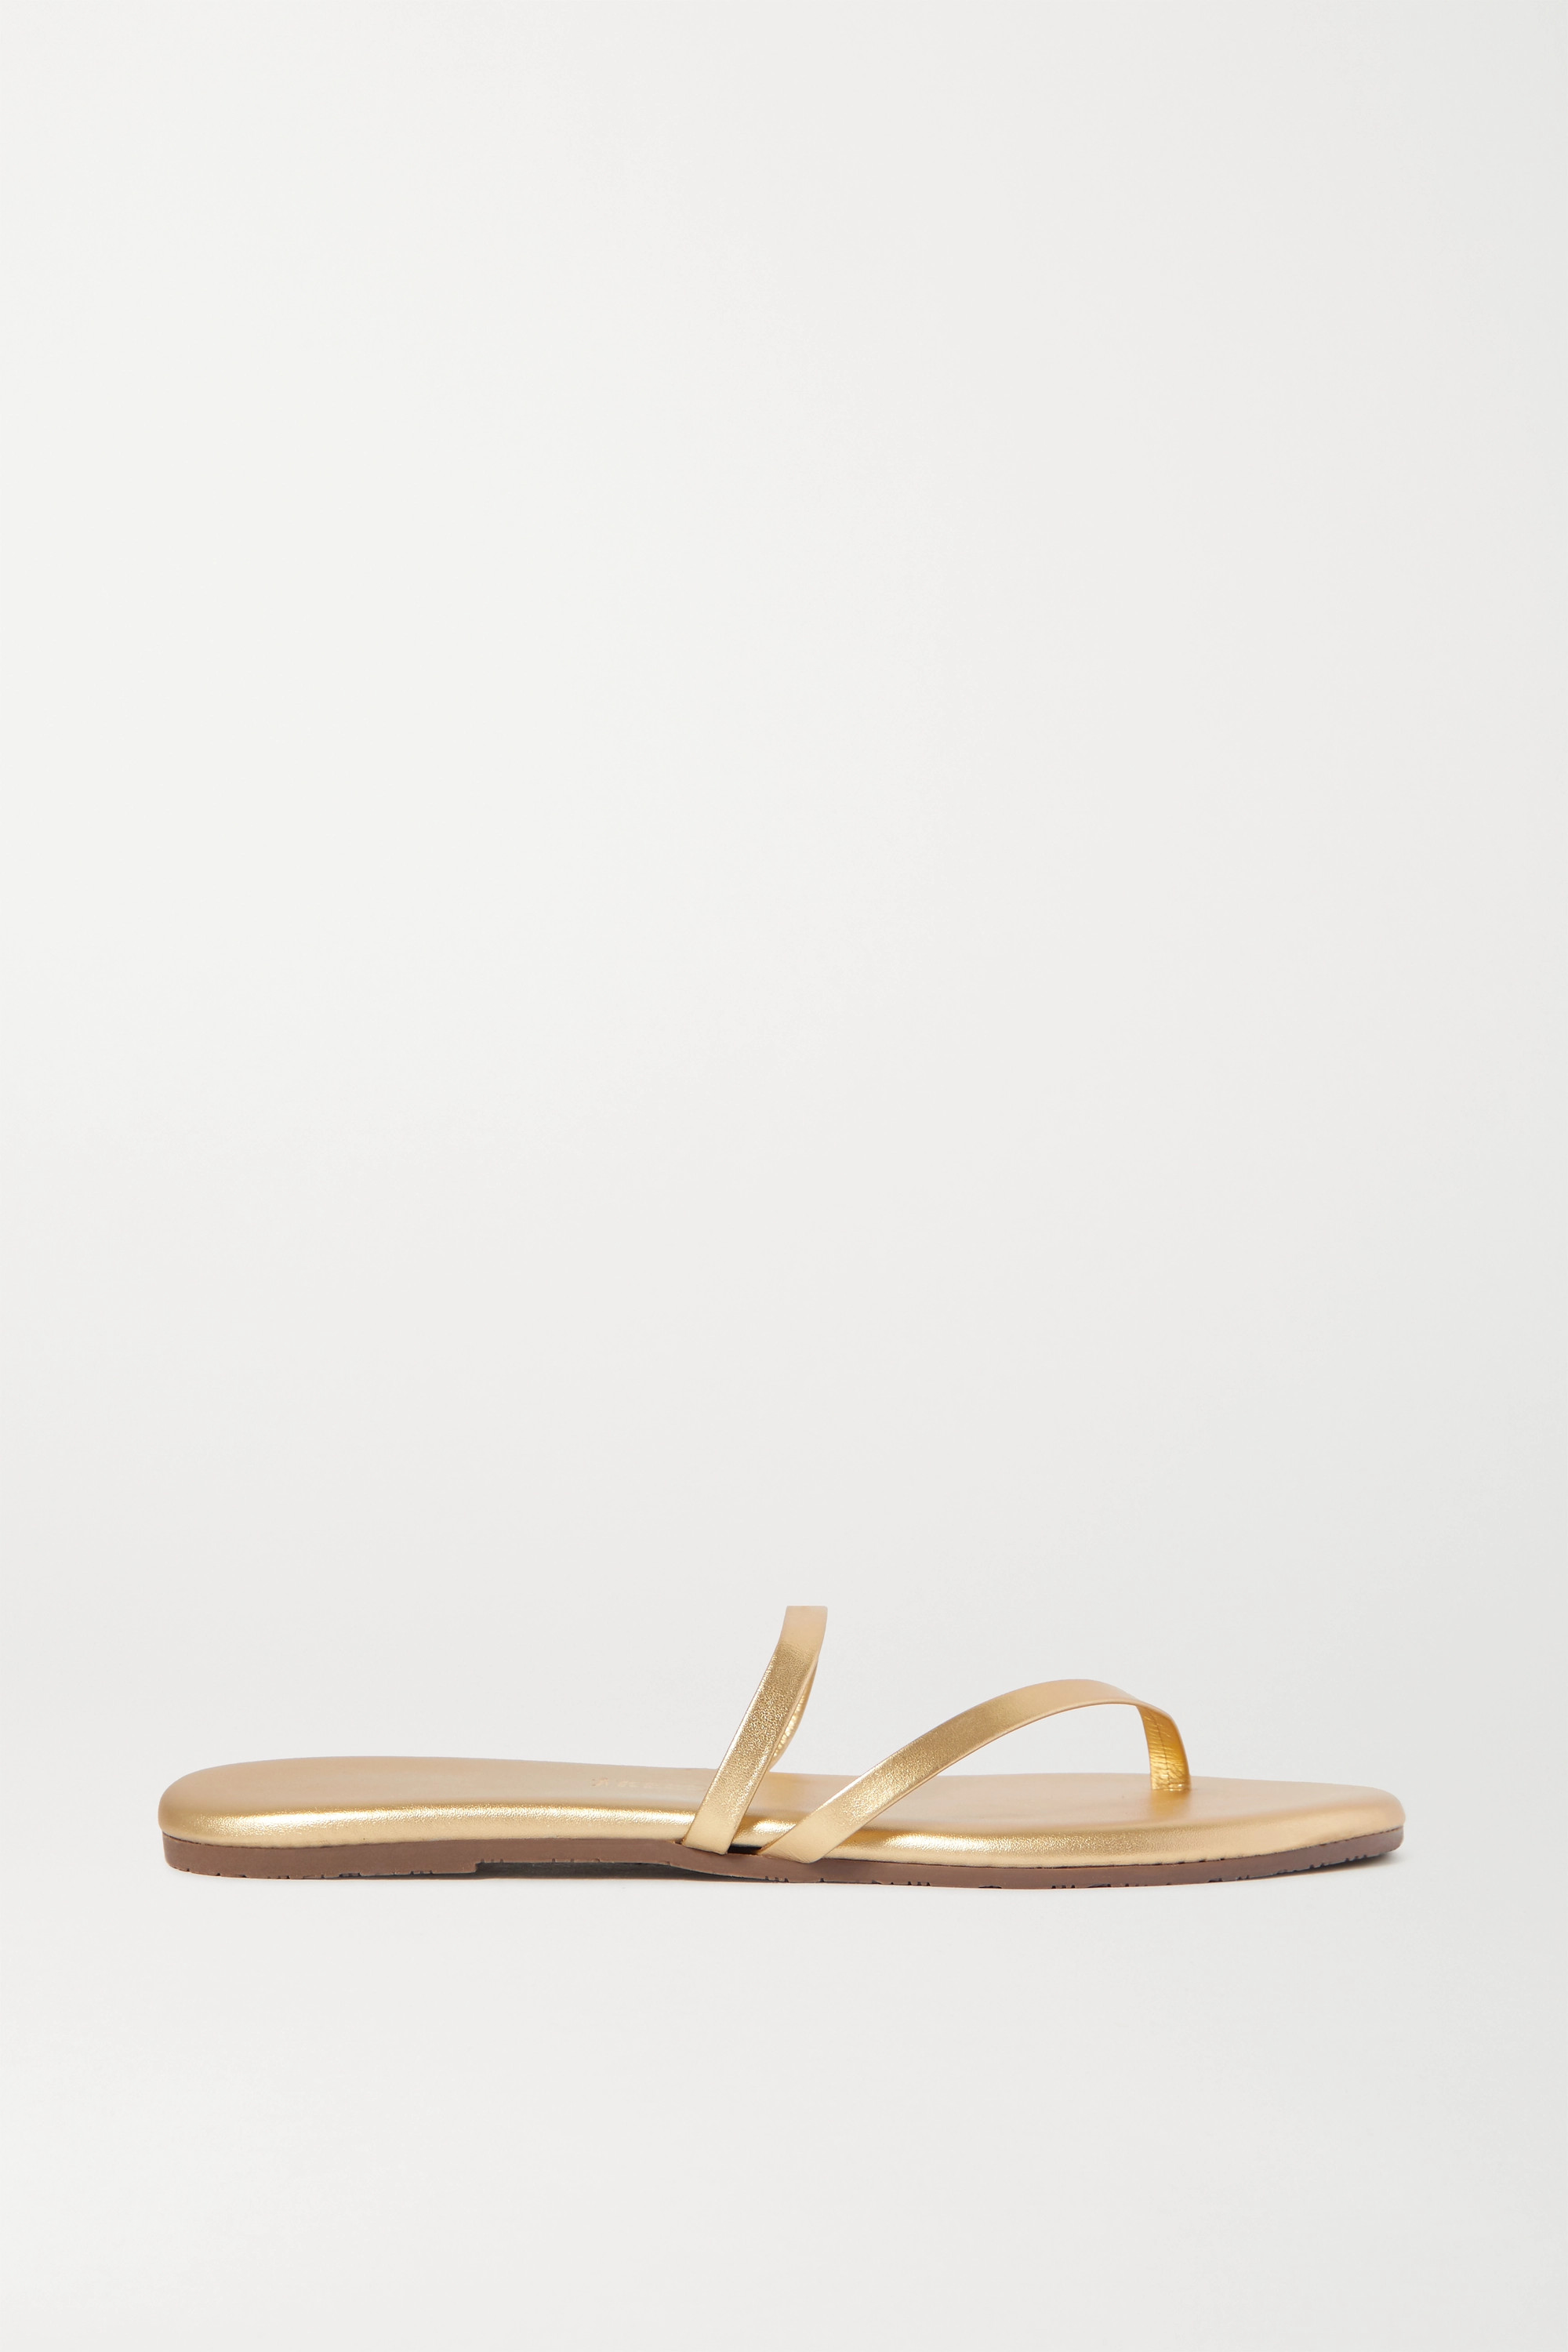 TKEES Sarit metallic leather sandals